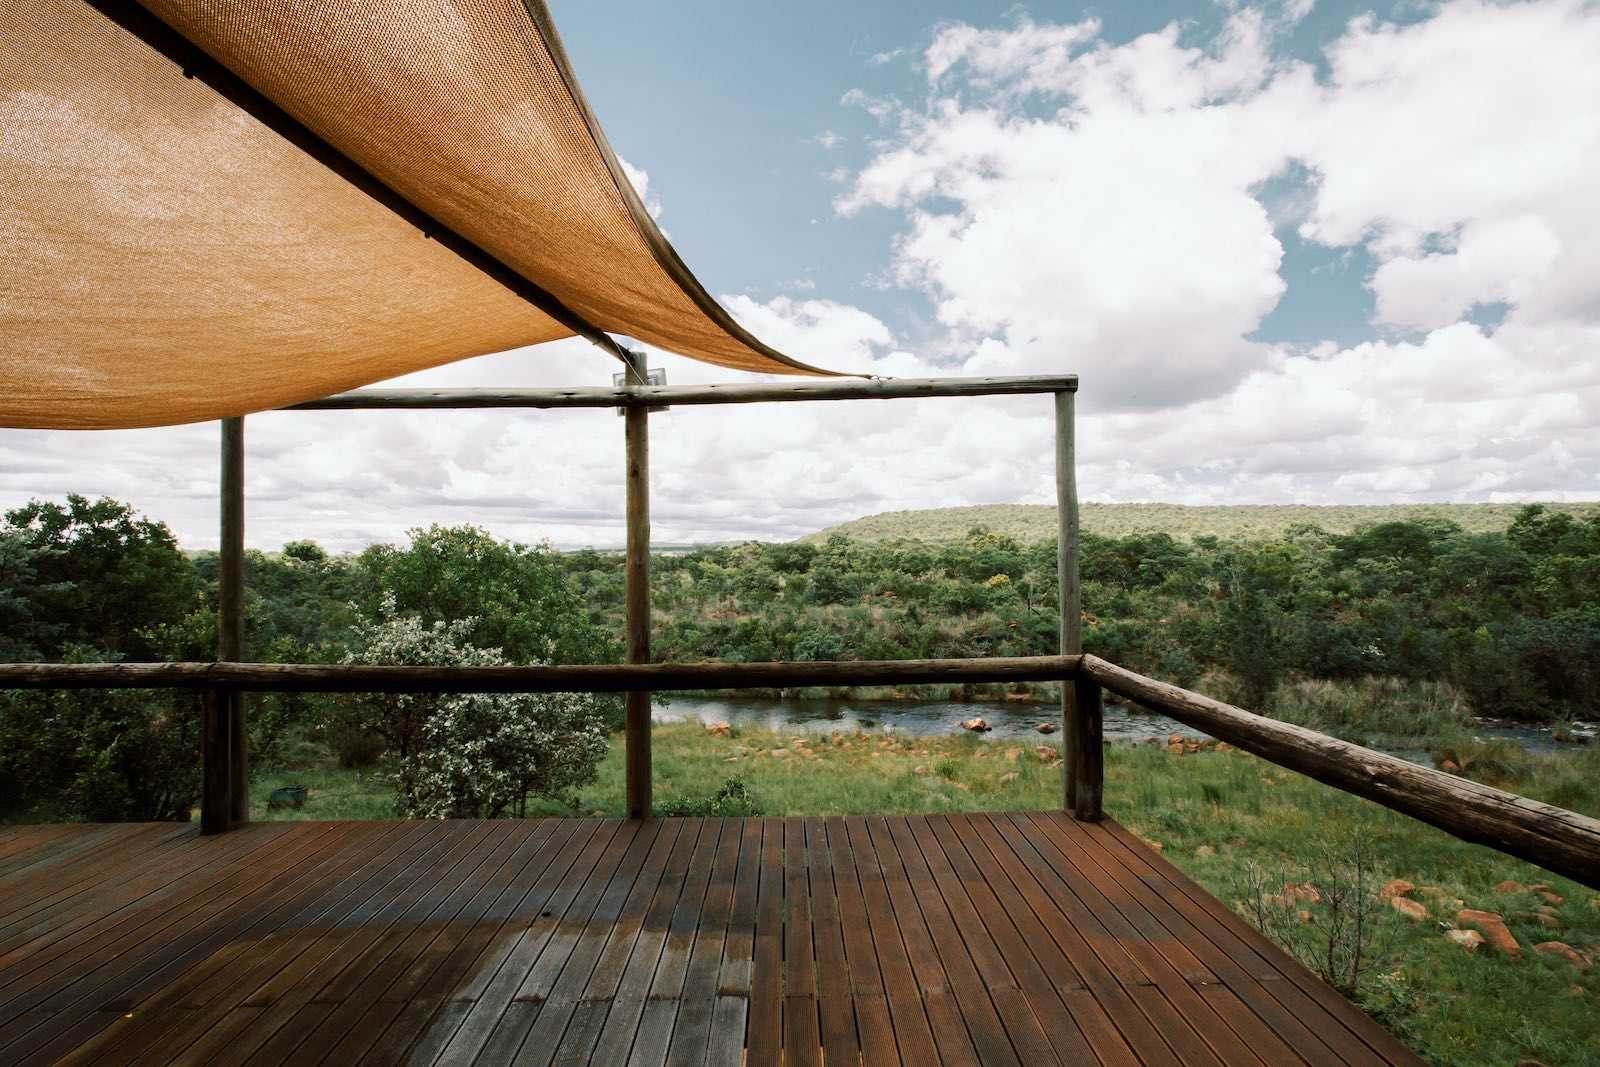 Kingfisher Lodge - Mangweni Private Game Reserve04